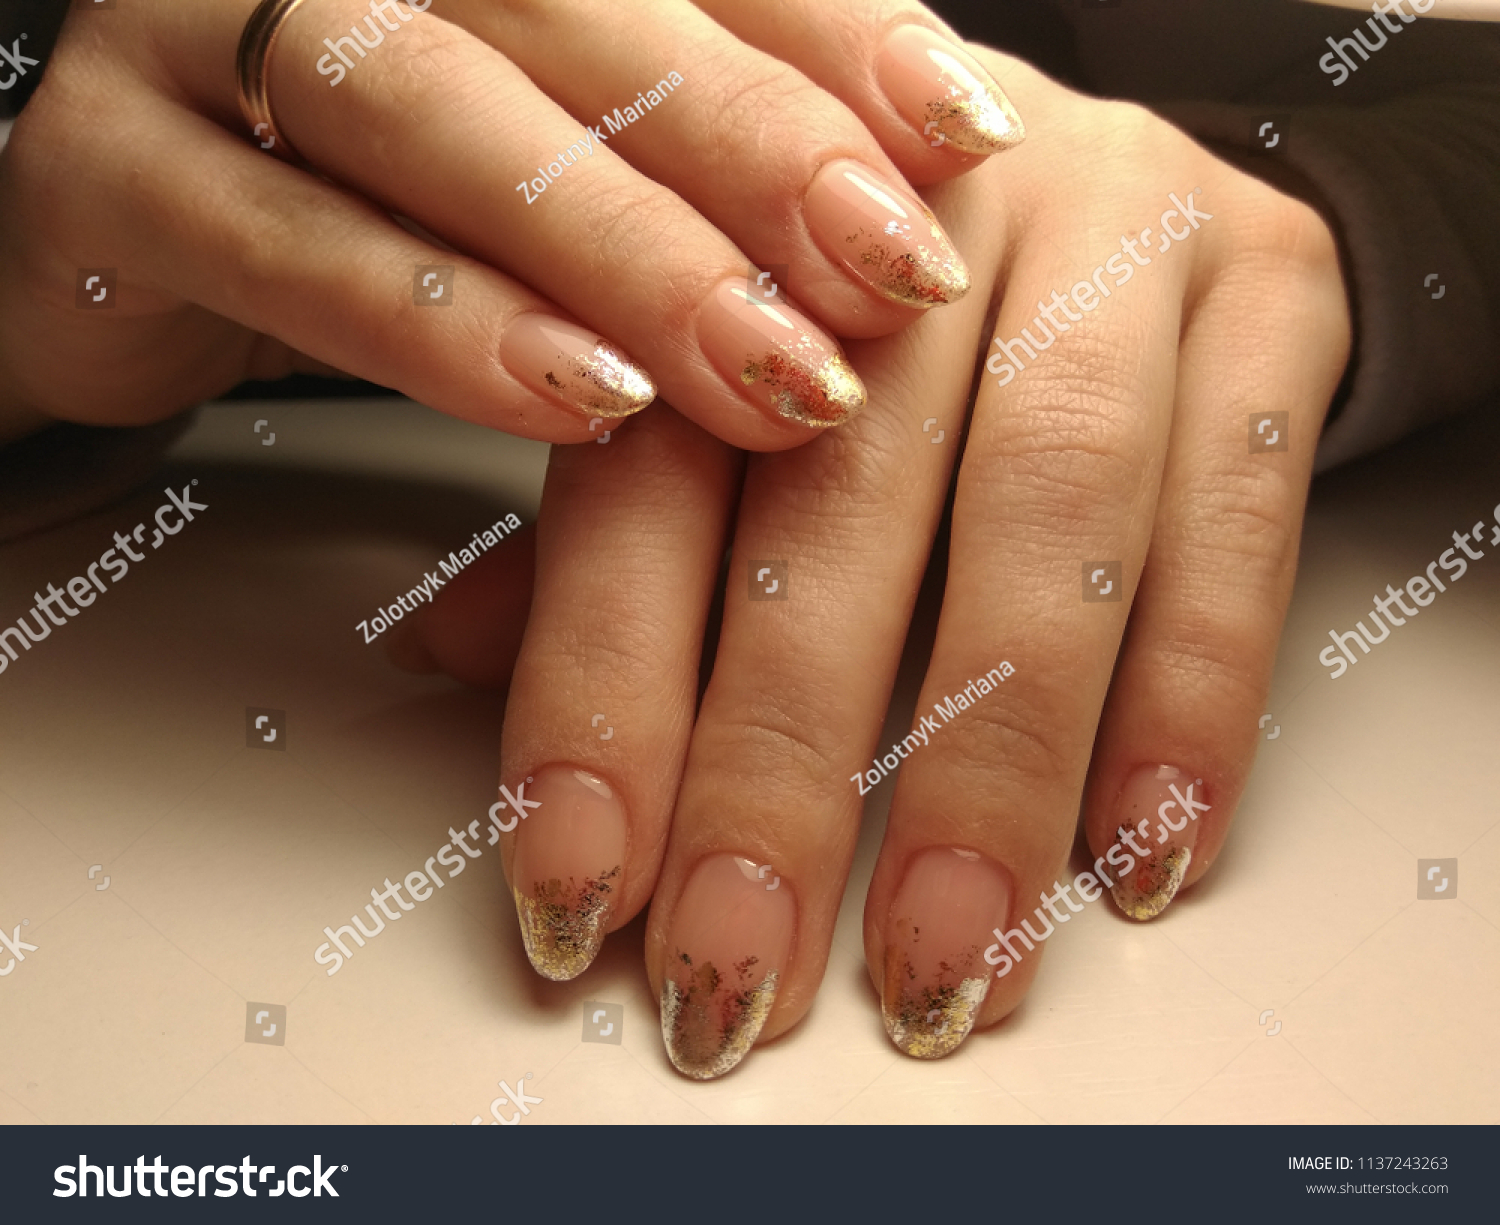 Natural Nails Modern French Manicure Stock Photo (Edit Now ...